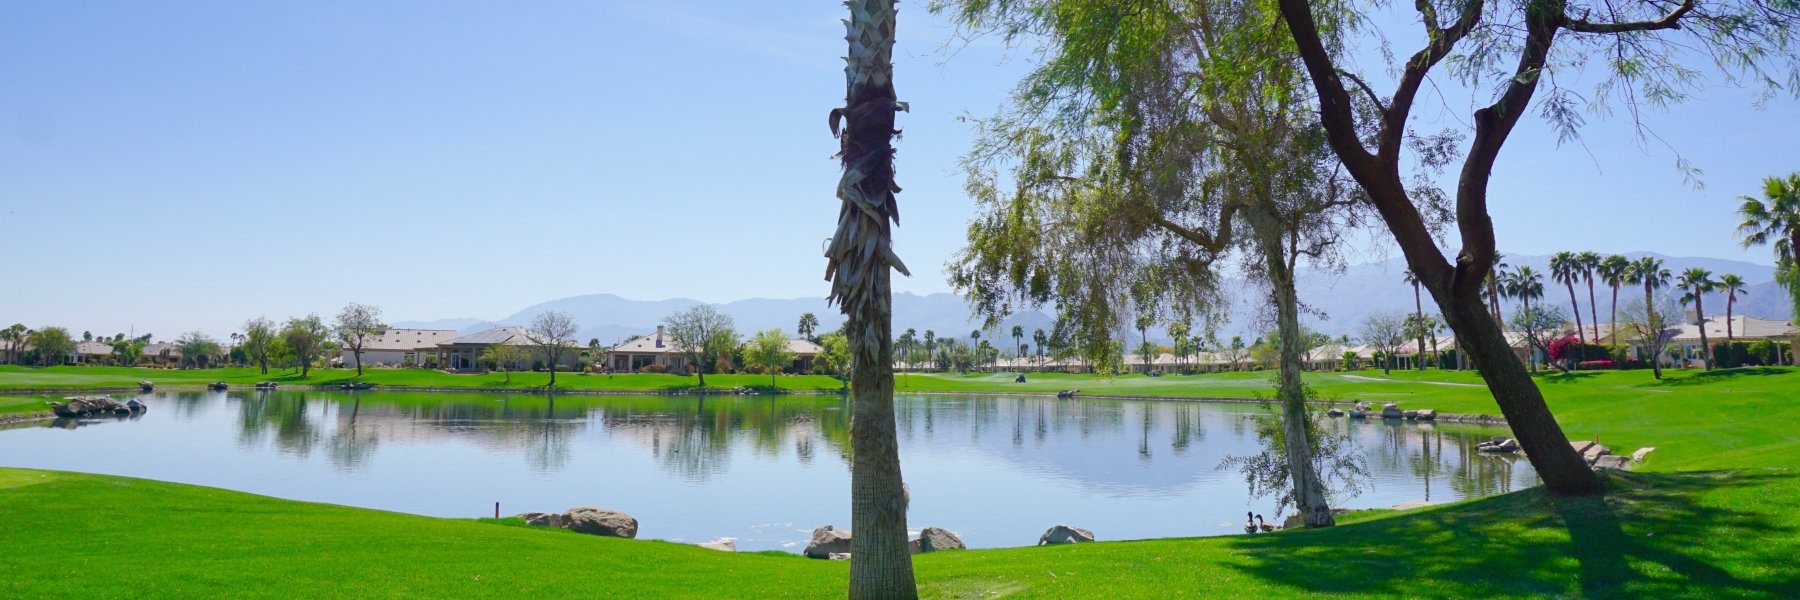 Heritage Palms Country Club is a community of homes in Indio California